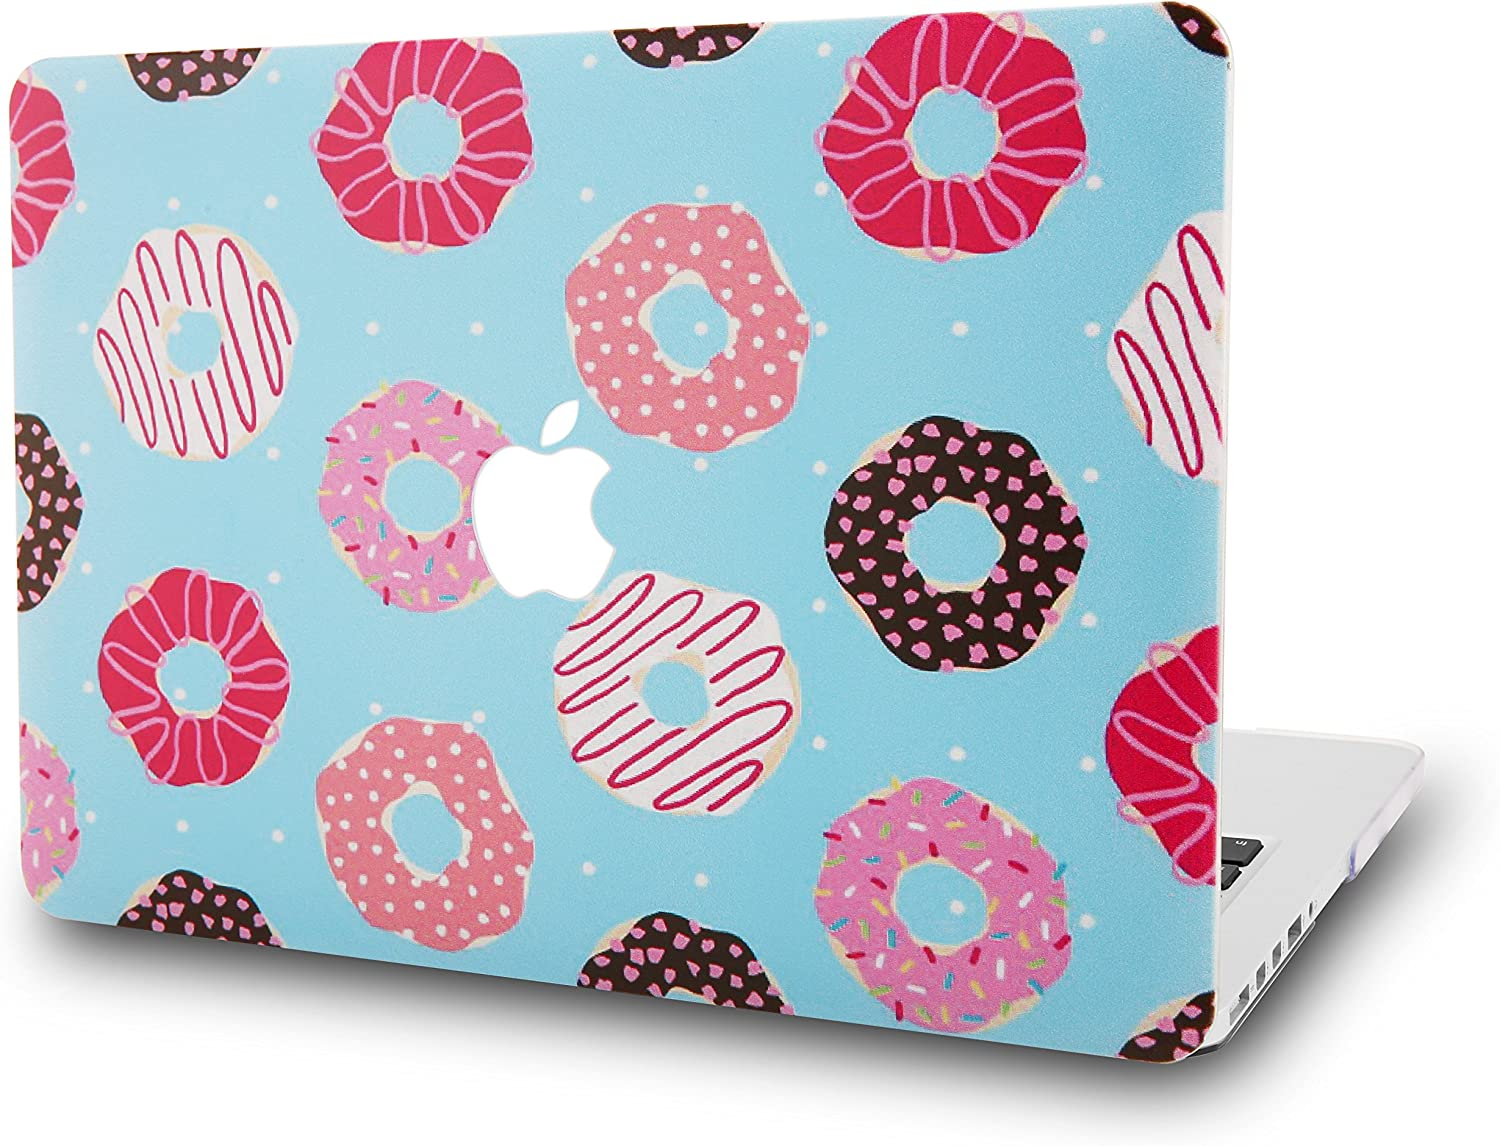 Four Season Tree 2020//2019//2018//2017//2016 Plastic Hard Shell Cover A2159//A1989//A1706//A1708 Touch Bar KECC Laptop Case for MacBook Pro 13